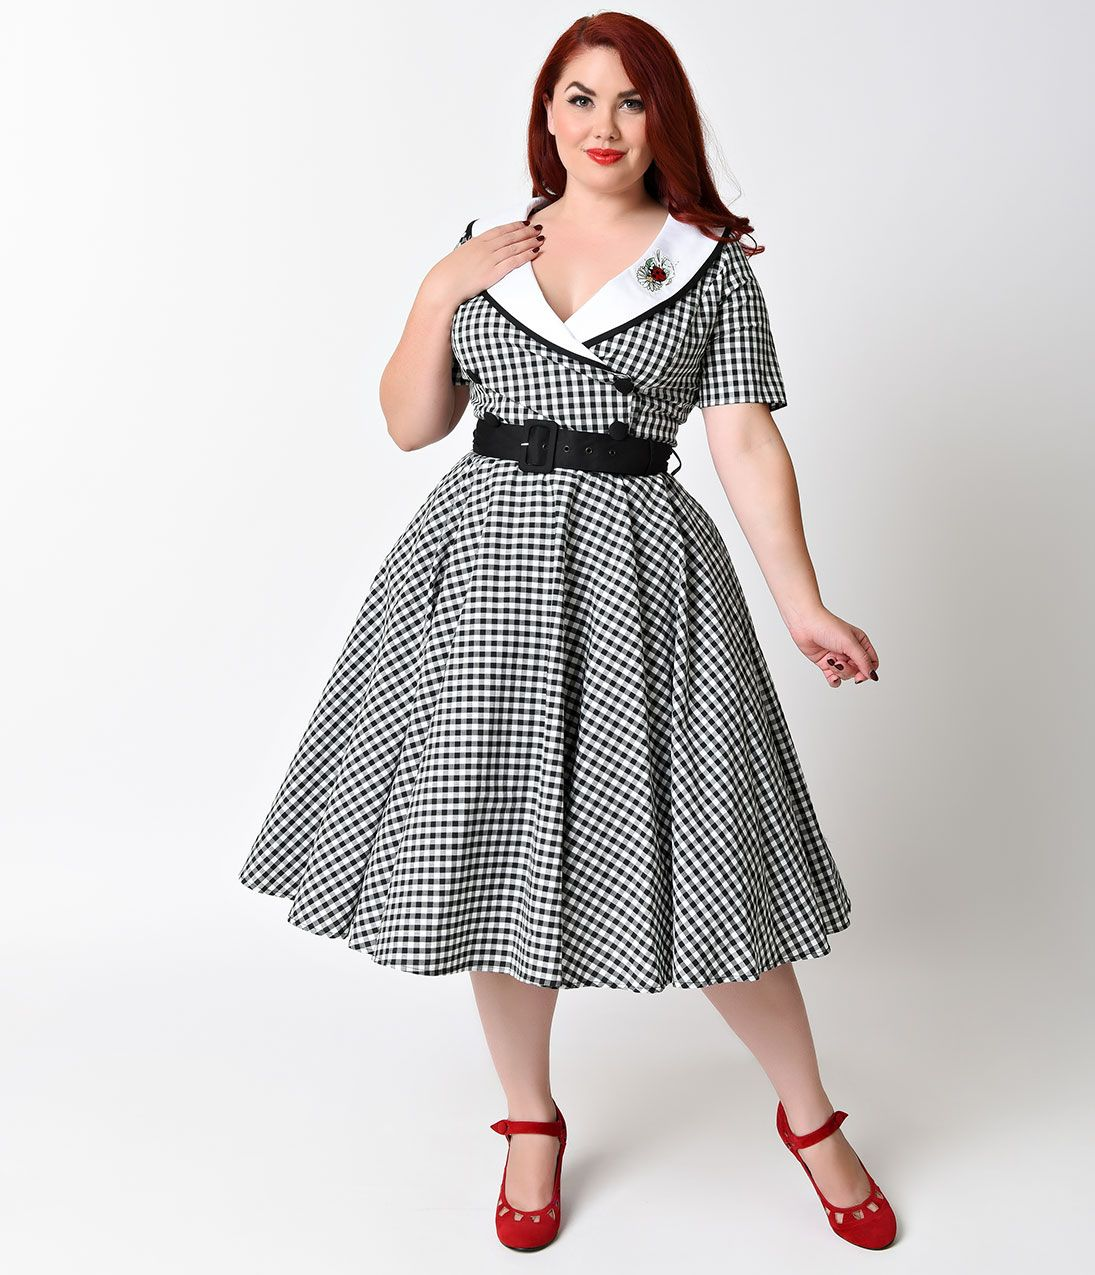 vintage dresses plus size choice image - dresses design ideas